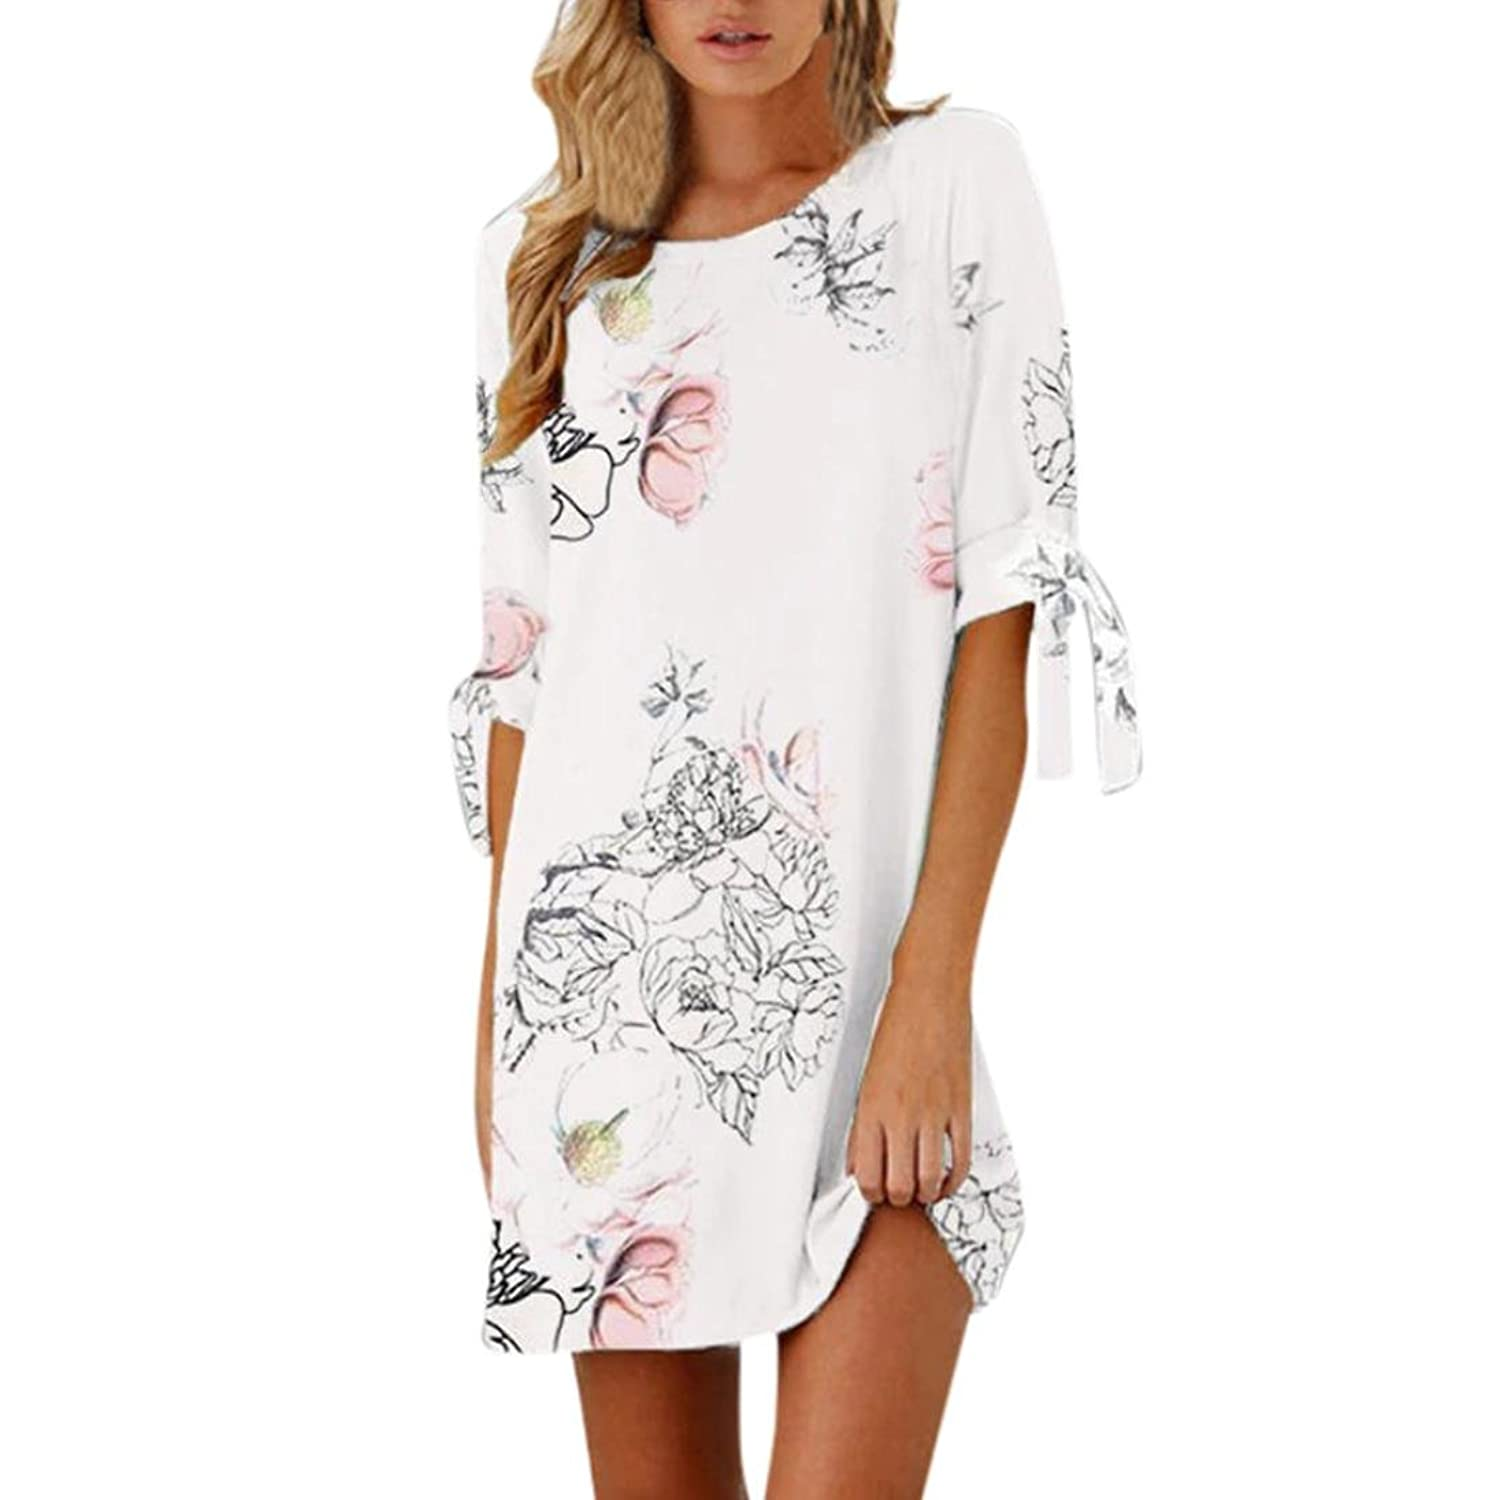 e6445c2f903  Polyester ❤ Summer mini dresses beach short dresses floral mini dress  bandage beach dress floral small dress half sleeve dress mini bandage summer  ...